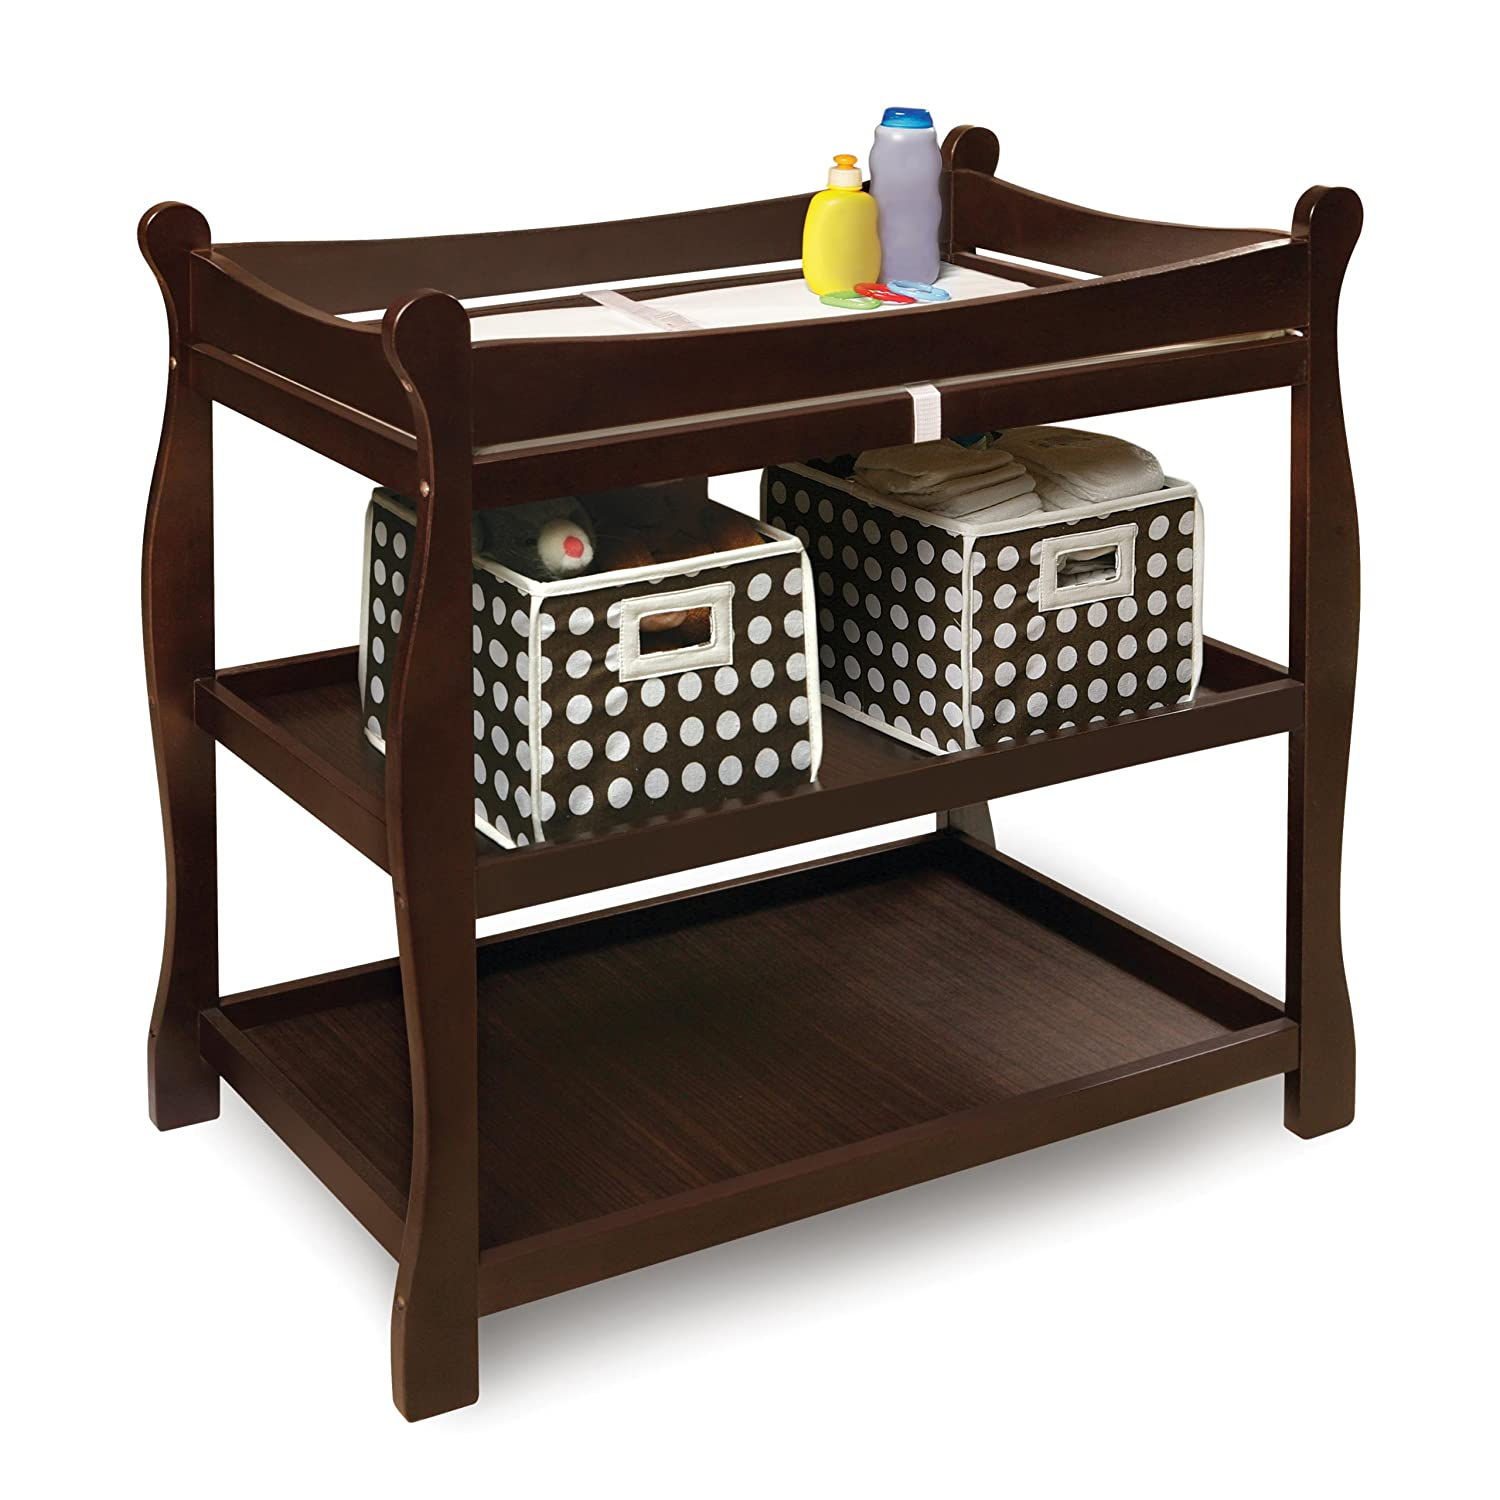 Amazon.com : Badger Basket Sleigh Style Baby Changing Table, Cherry : Baby